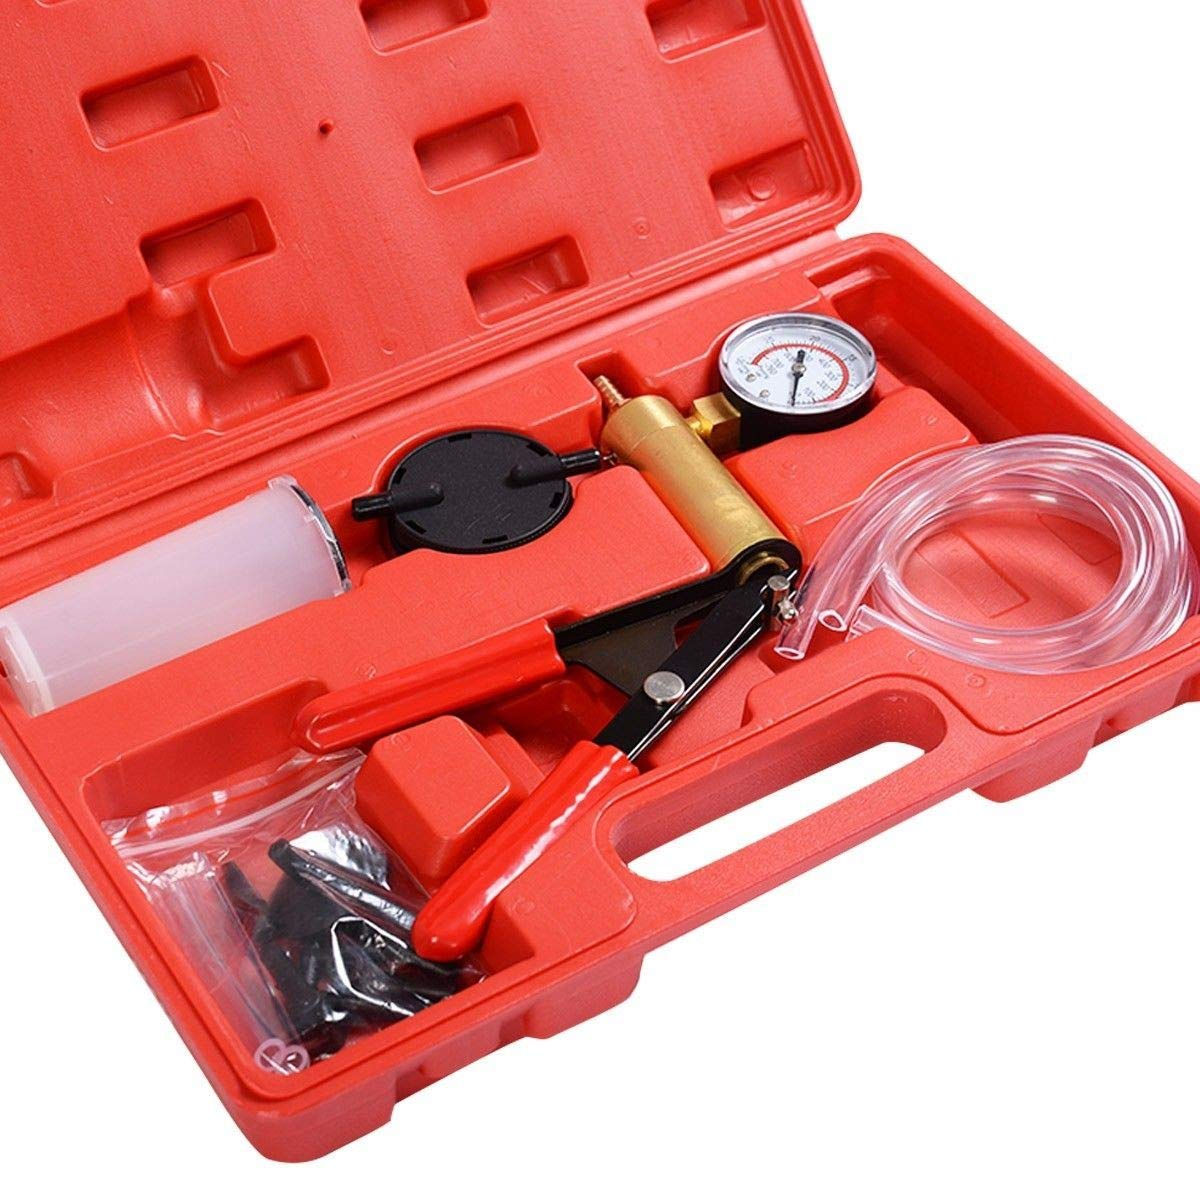 MD Group 2 in1 Brake Bleeder Bleeding & Vacuum Pump Tester Kit Professional Automotive by MD Group